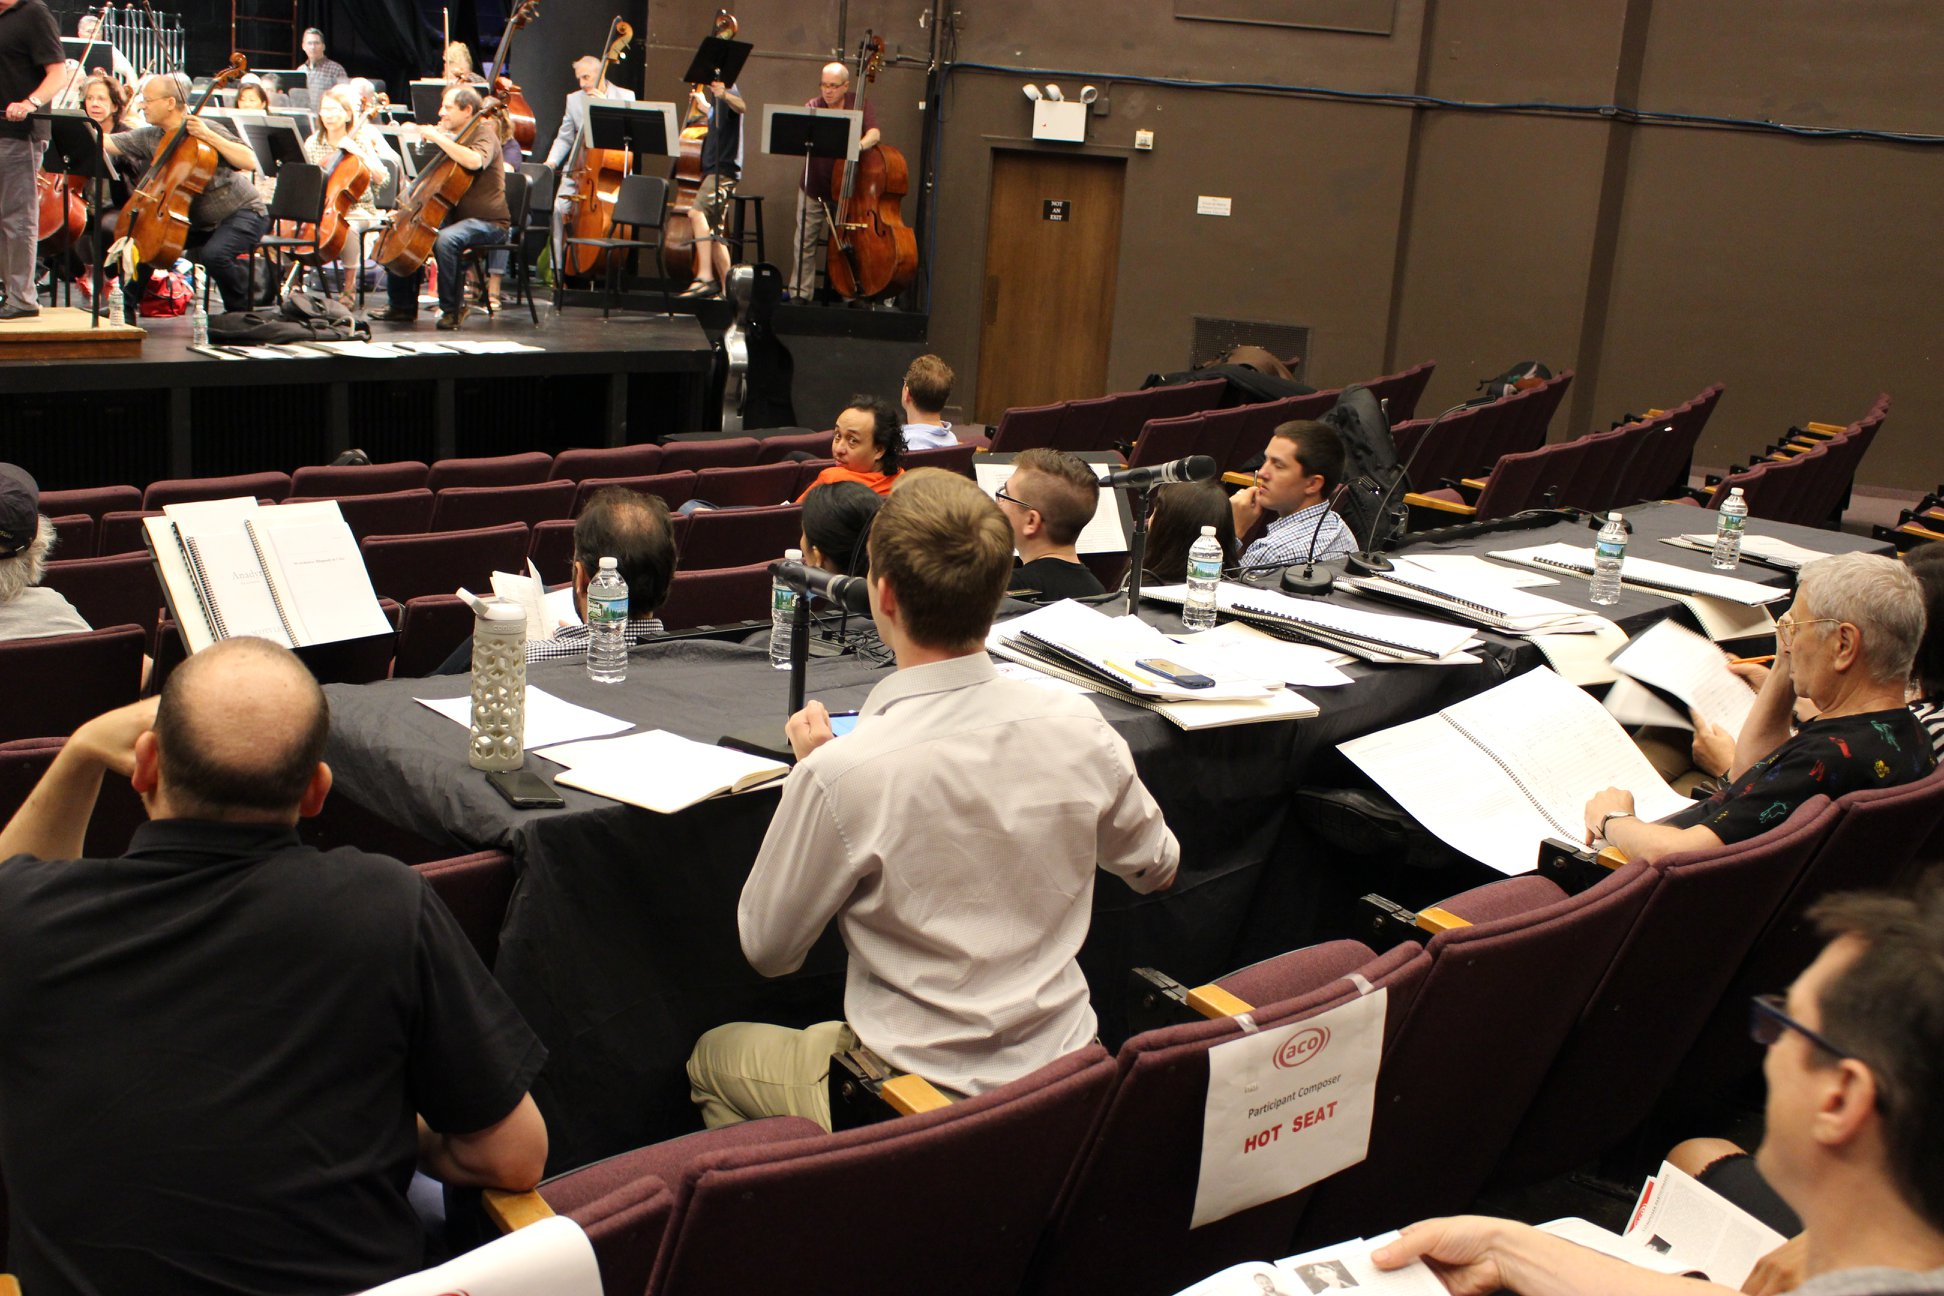 """One of the Underwood composers sitting in a seat marked """"hot seat"""" while the American Composers Orchestra reads through his music. (Photo by Peter Yip, courtesy Jensen Artists)"""